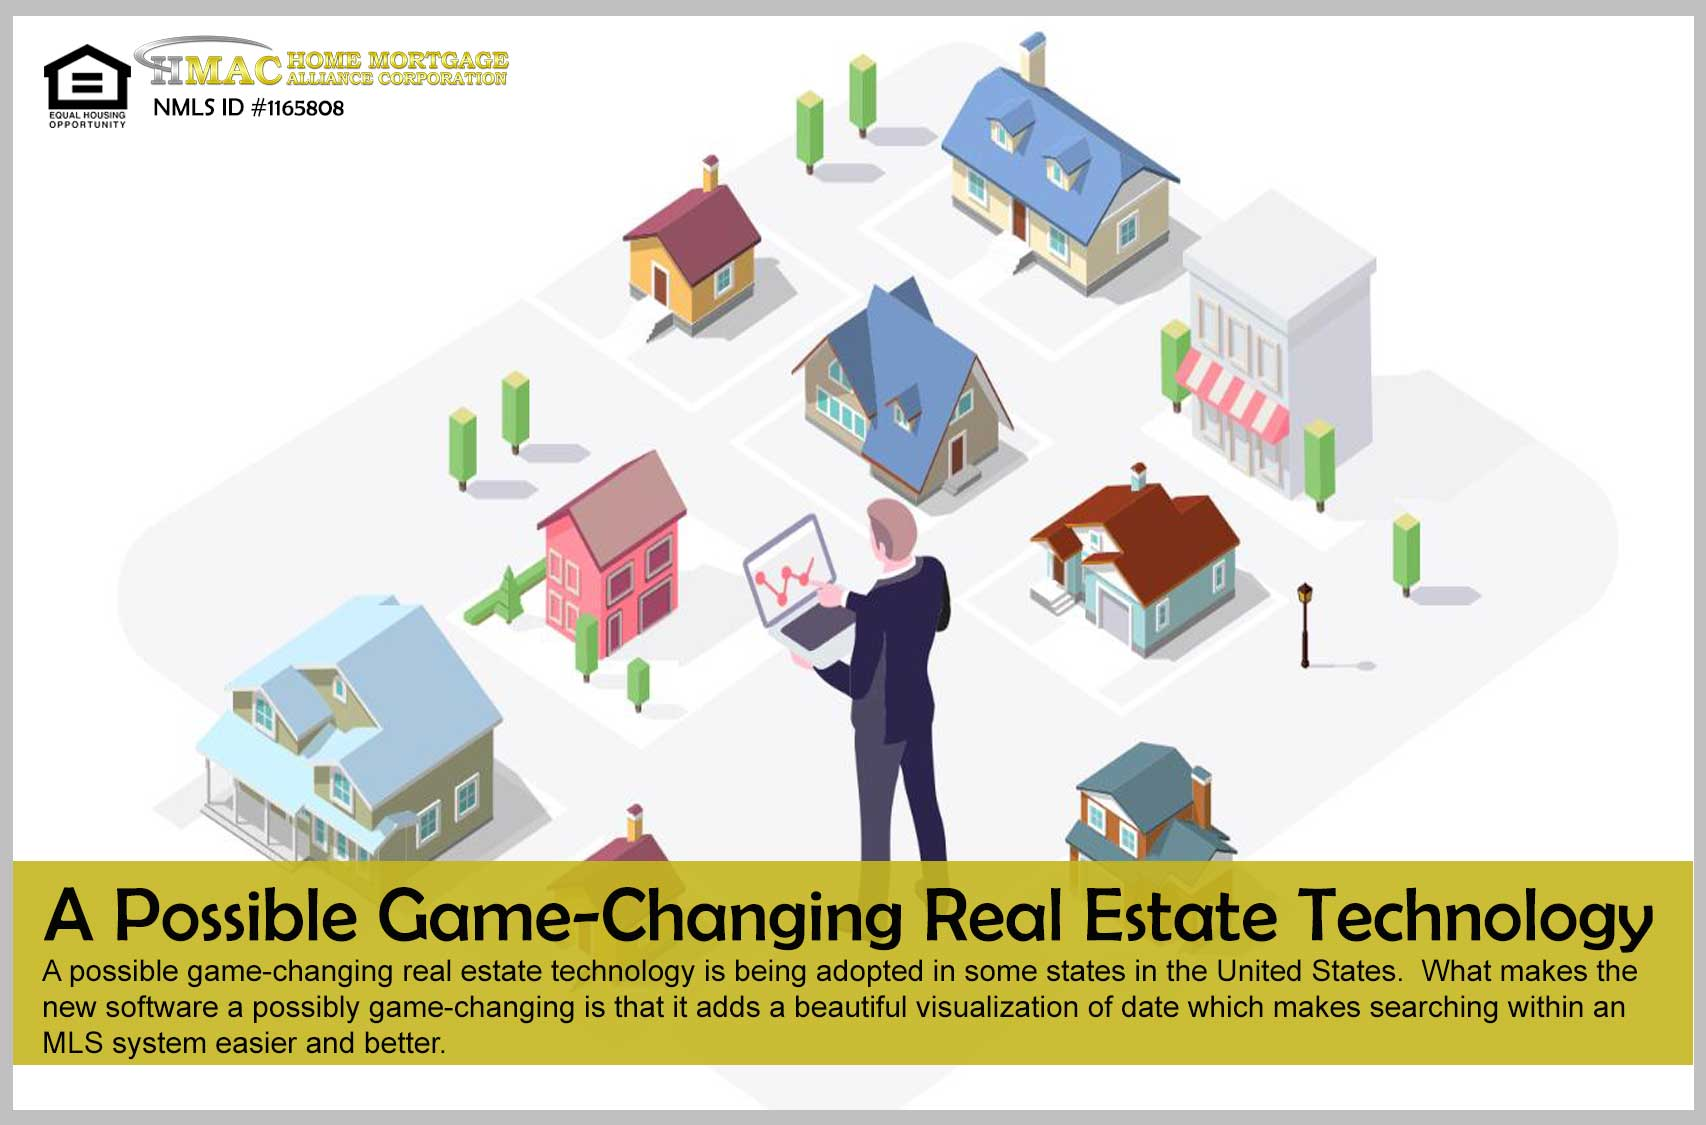 Possible game-changing real estate technology